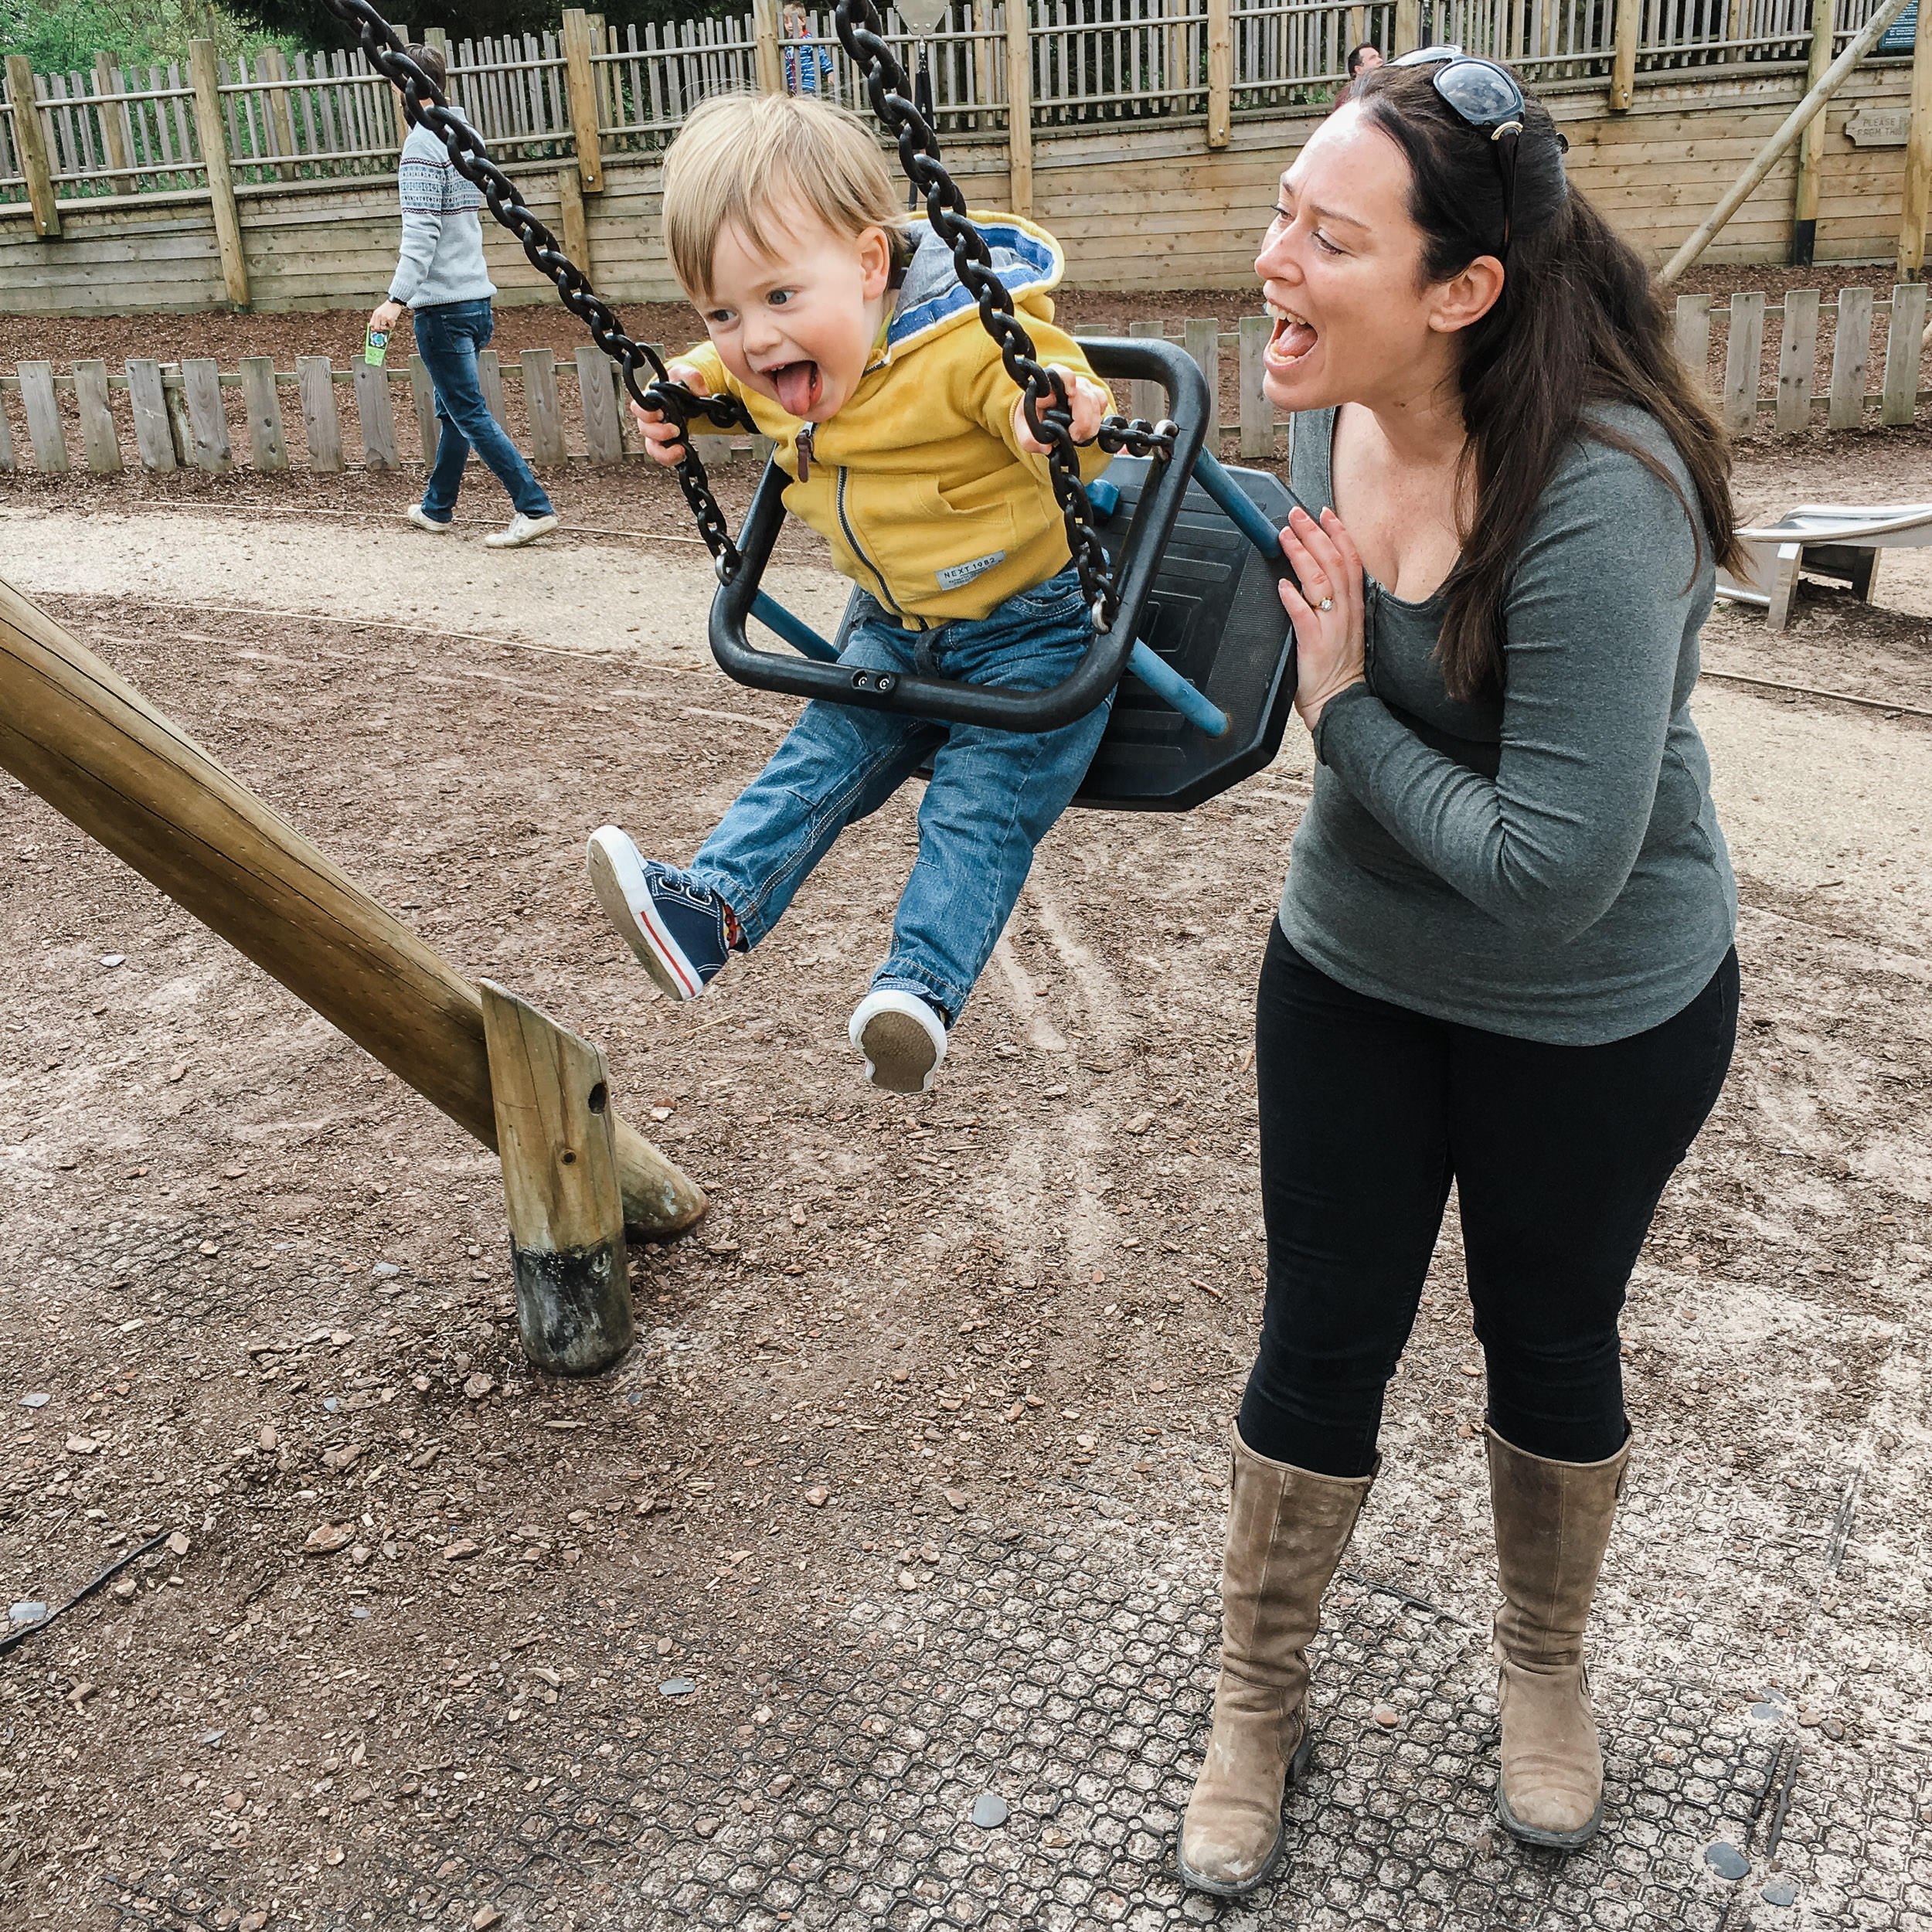 Woman pushing little boy on swing and laughing